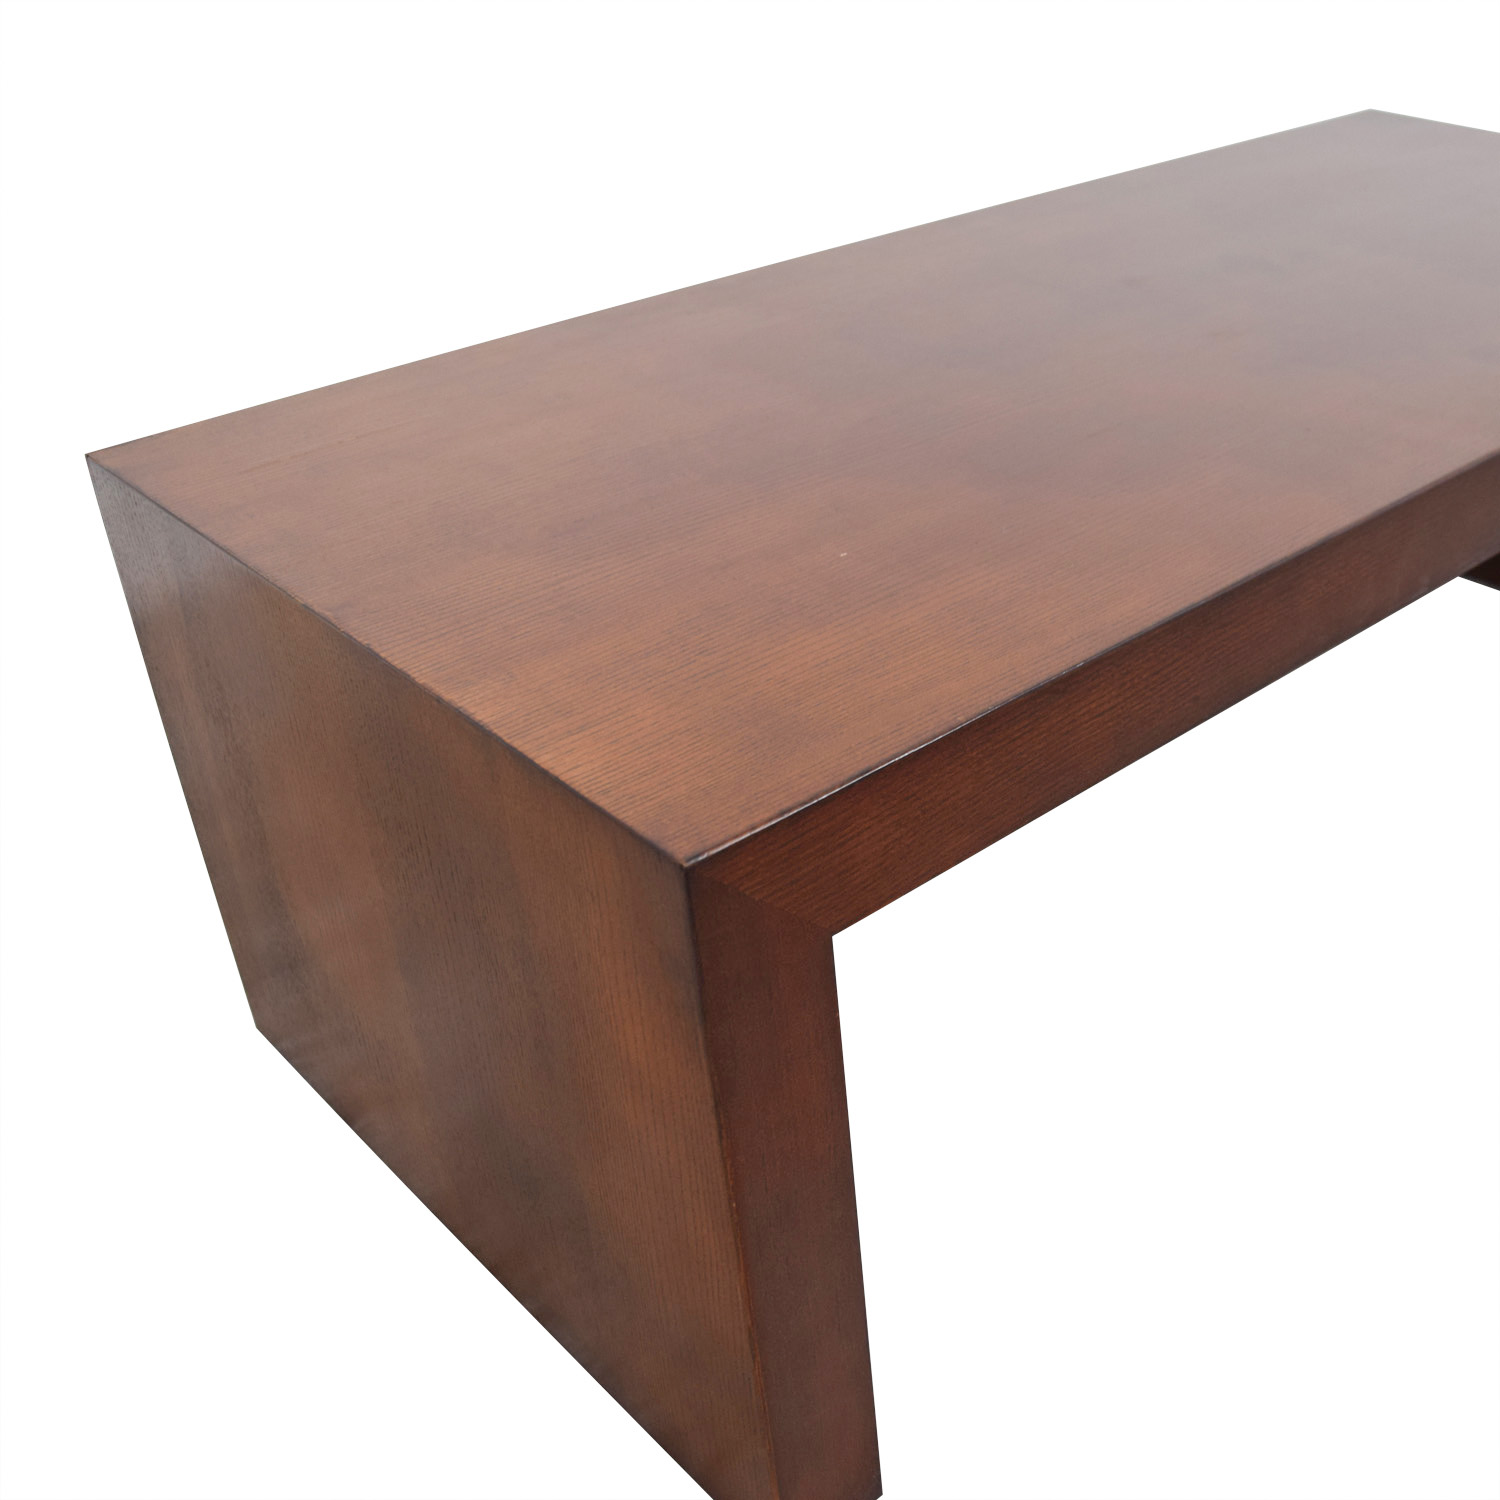 Copper Top Coffee Table Ethan Allen: Ethan Allen Ethan Allen Wood Coffee Table / Tables